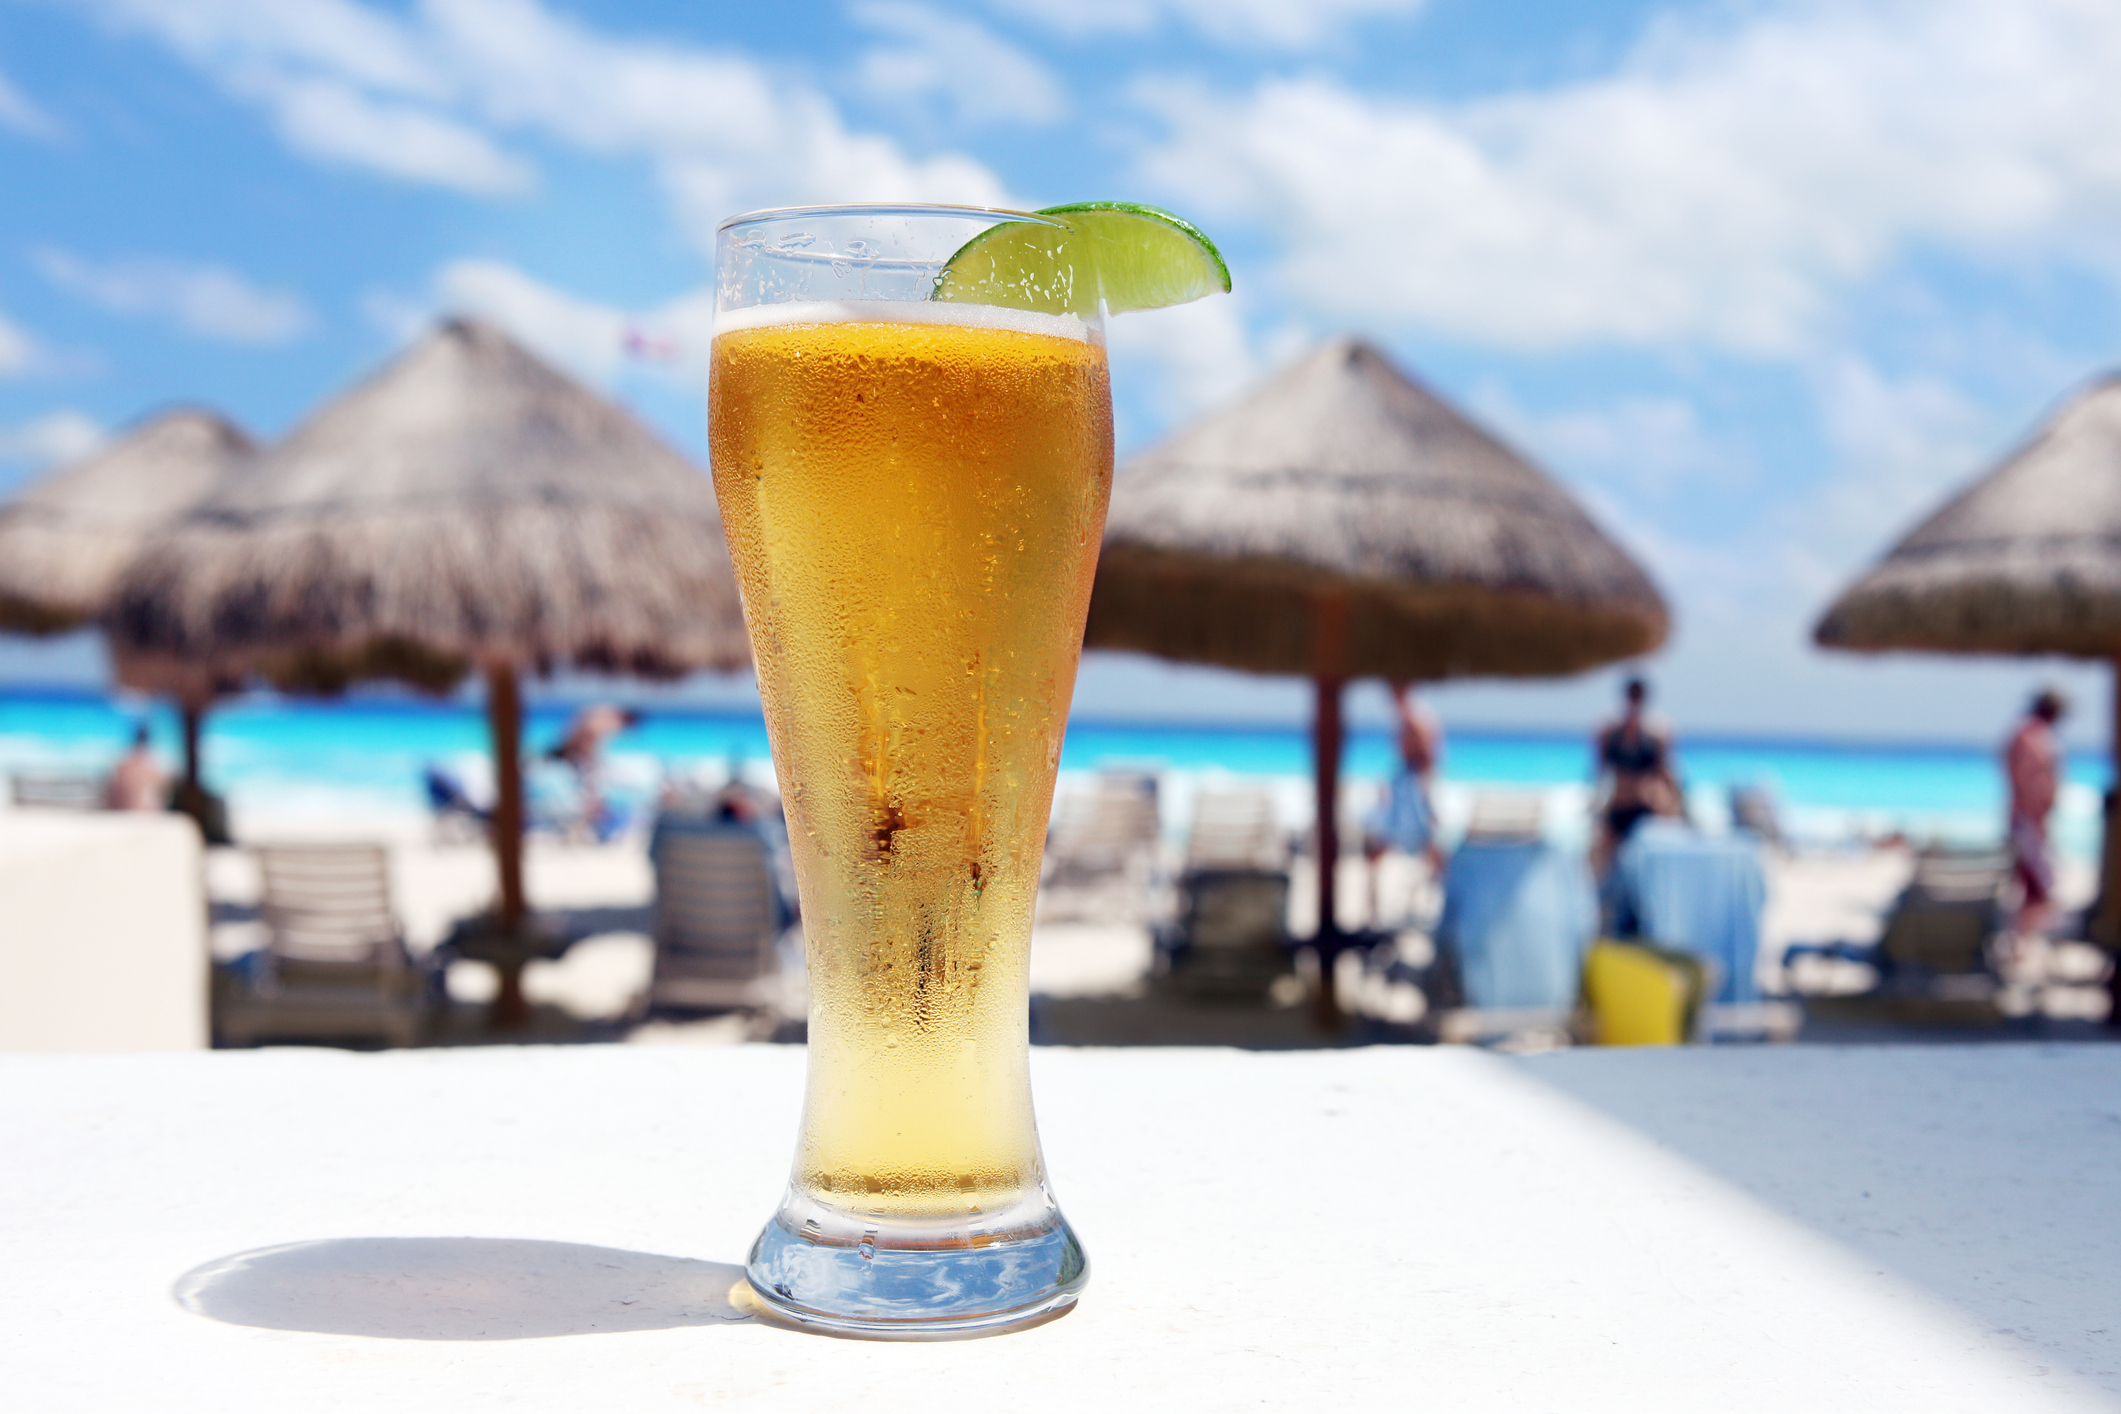 Cancun Alcohol Ban Was Fake News Says Governor